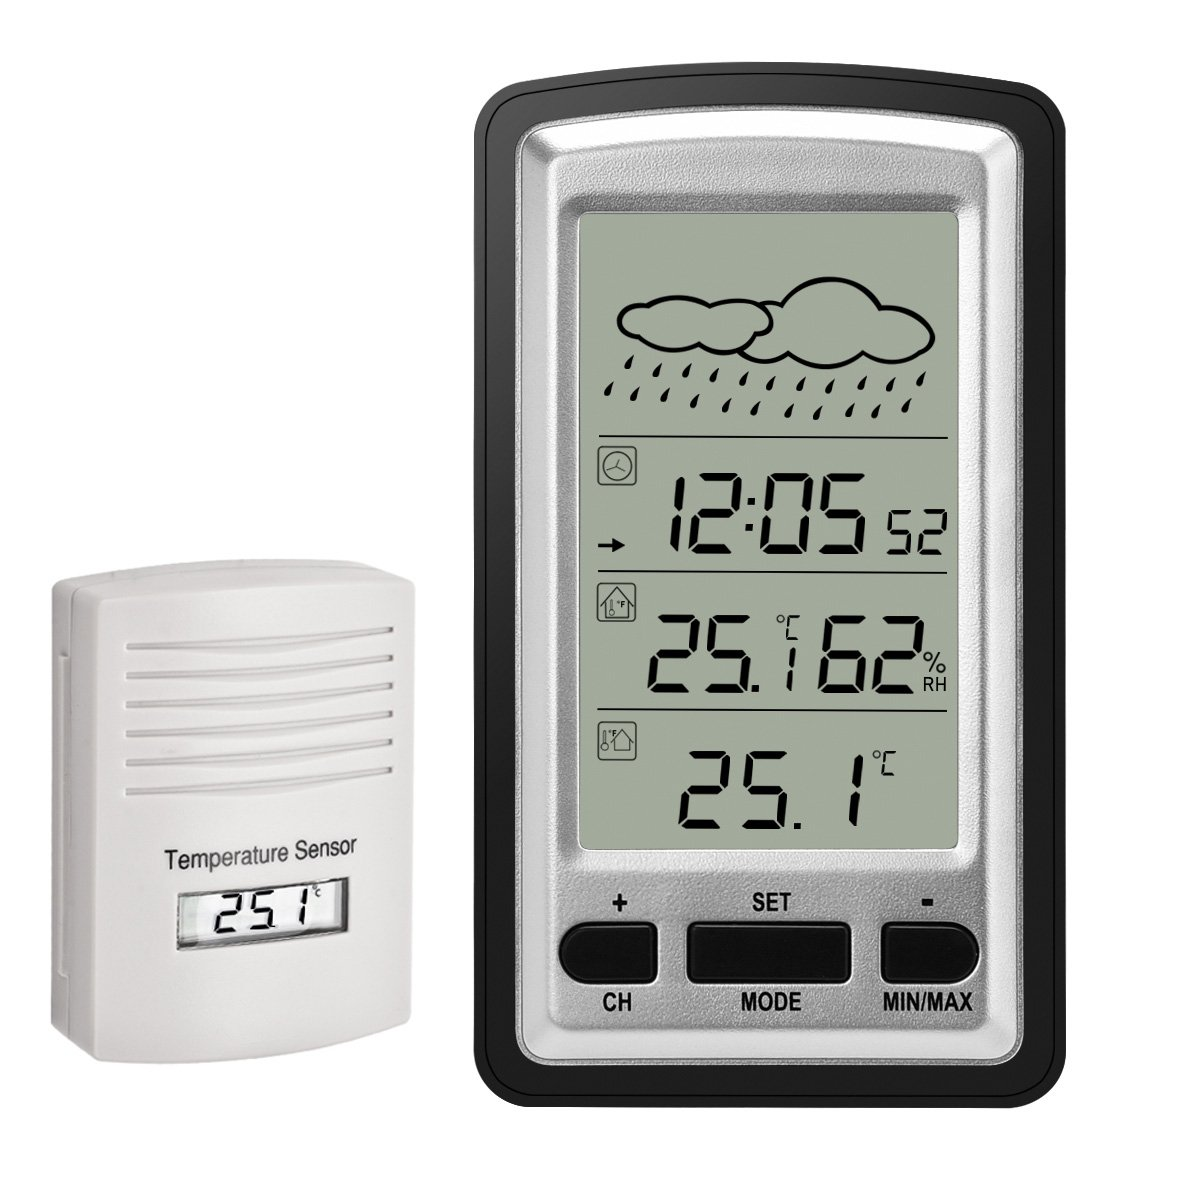 HopCentury Wireless Weather Station Digital LCD Alarm Clock with Outdoor Sensor Thermometer Hygrometer by HopCentury